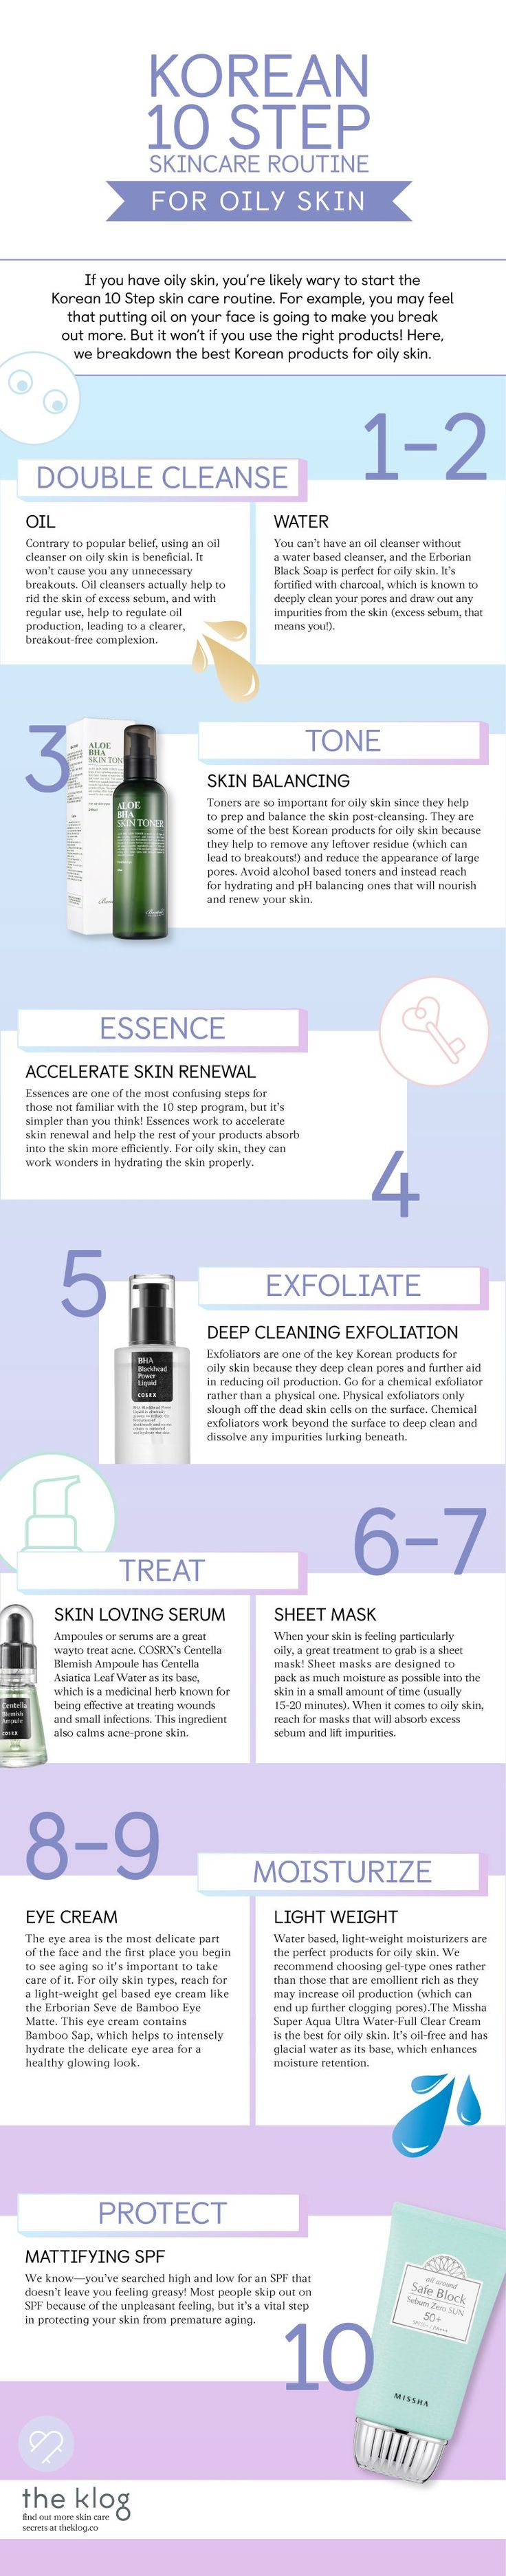 The Korean 10 Step Routine for Oily Skin  <><><> Click here: http://www.fitoderm.com/?id=8a4647